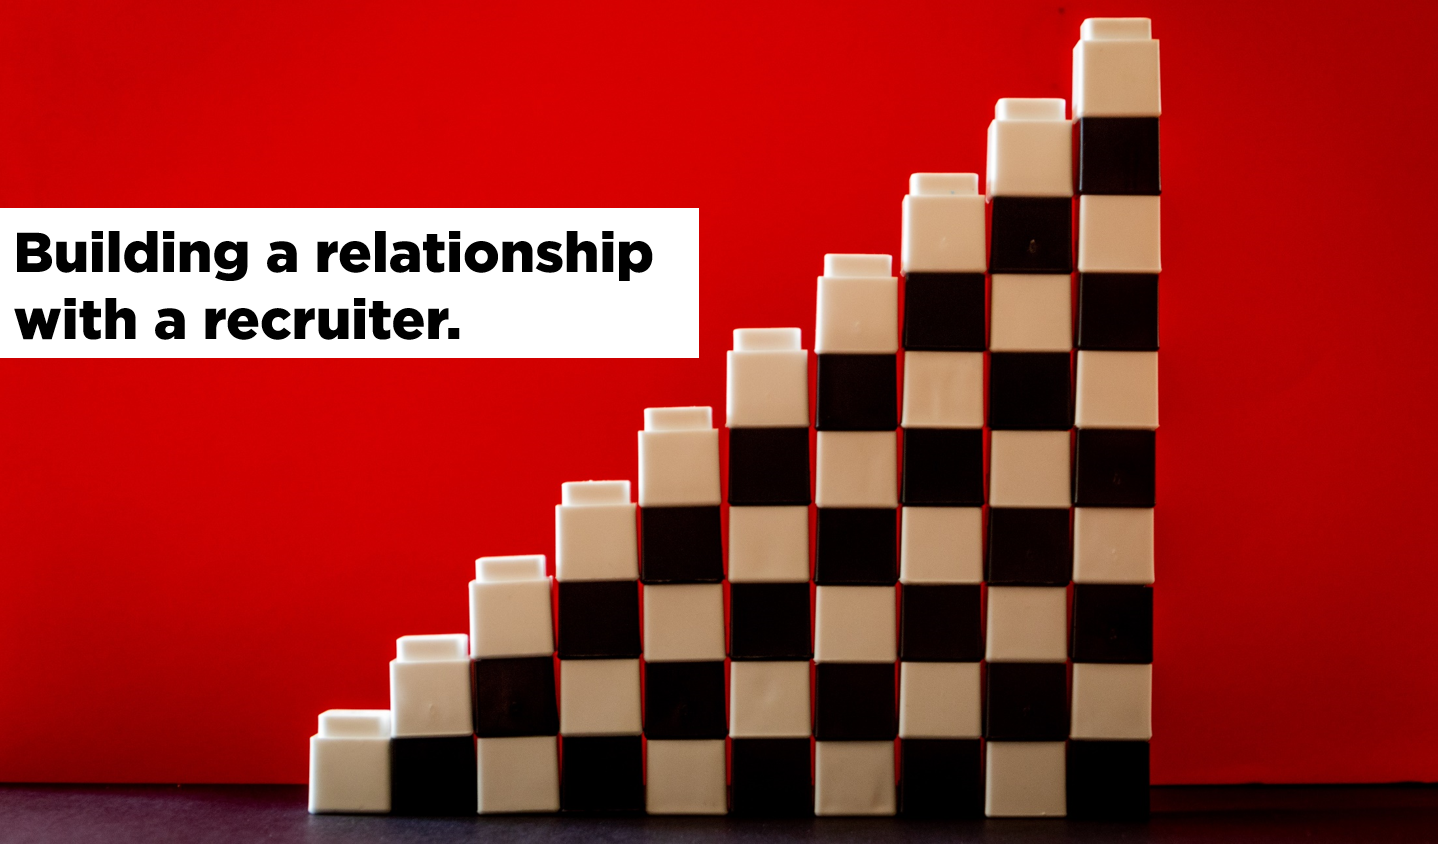 Recruiters, Recruitment, Building a relationship with a recruiter, Job search, Job hunt